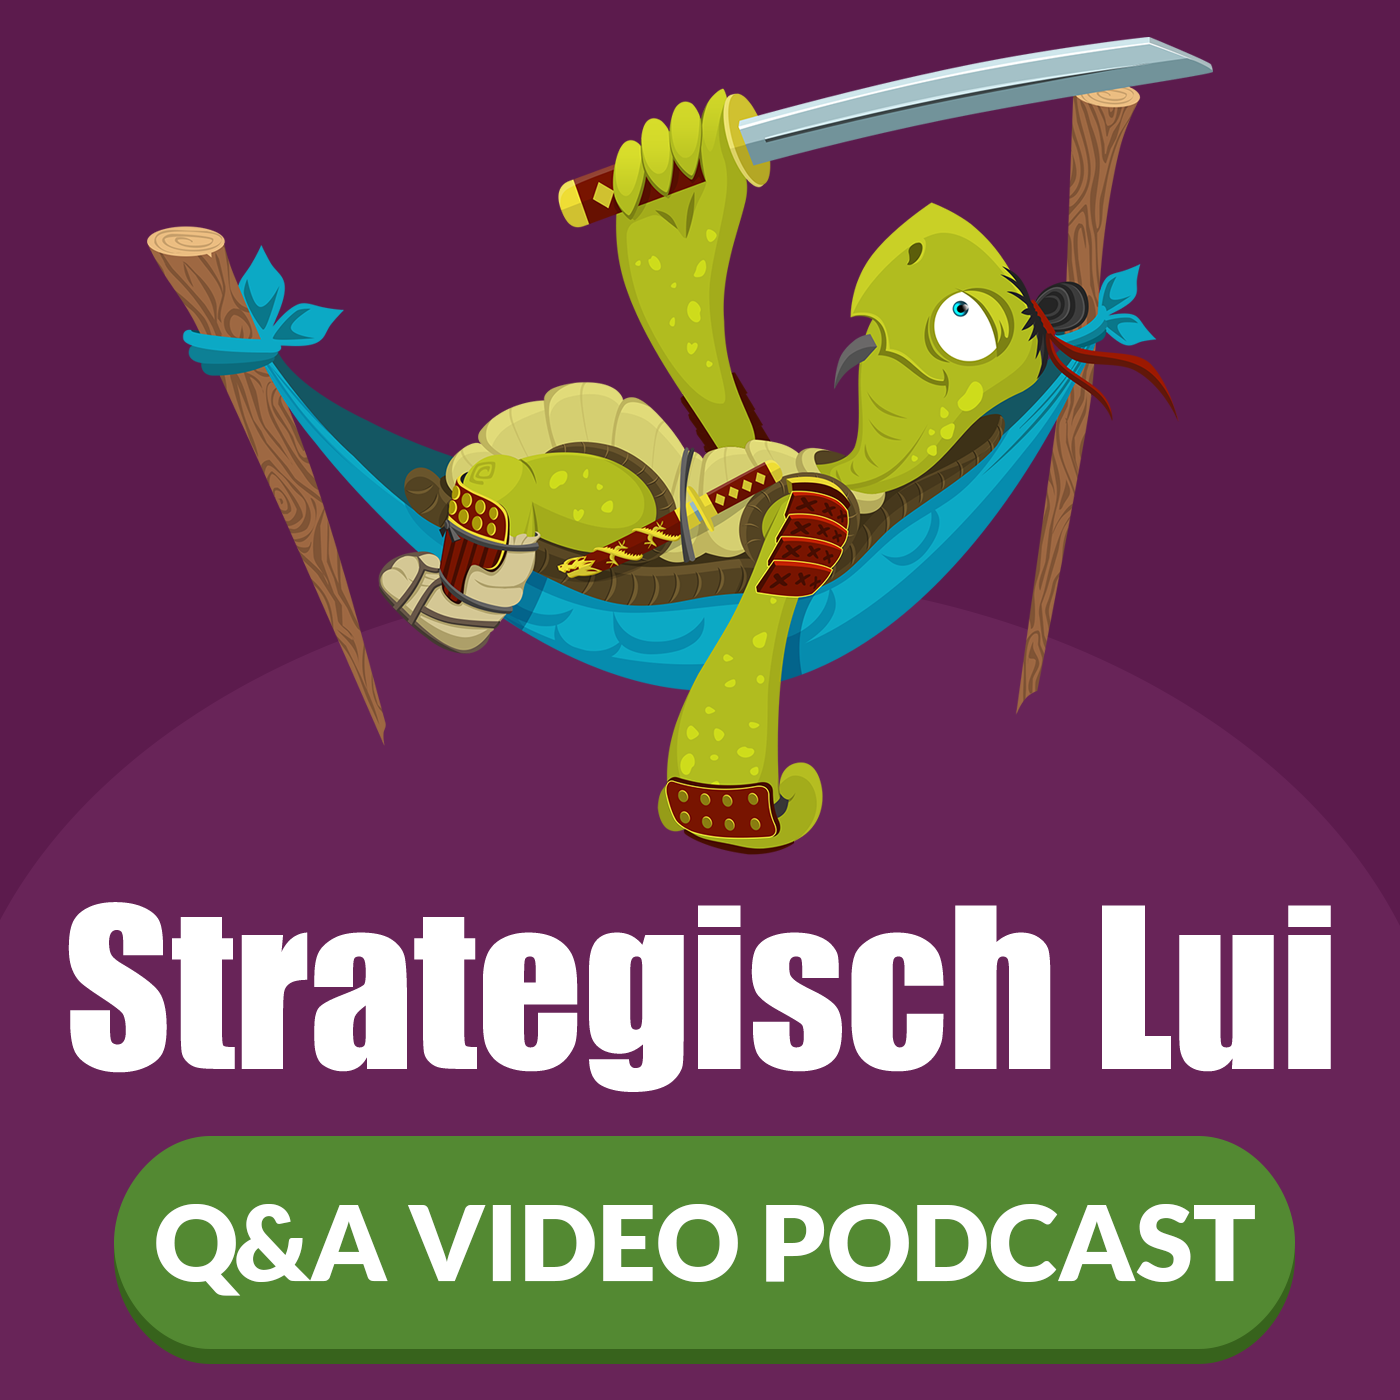 Strategisch Lui Q&A Video Podcast: Online Business ● Passief Inkomen ● Productiviteit ● Lifestyle